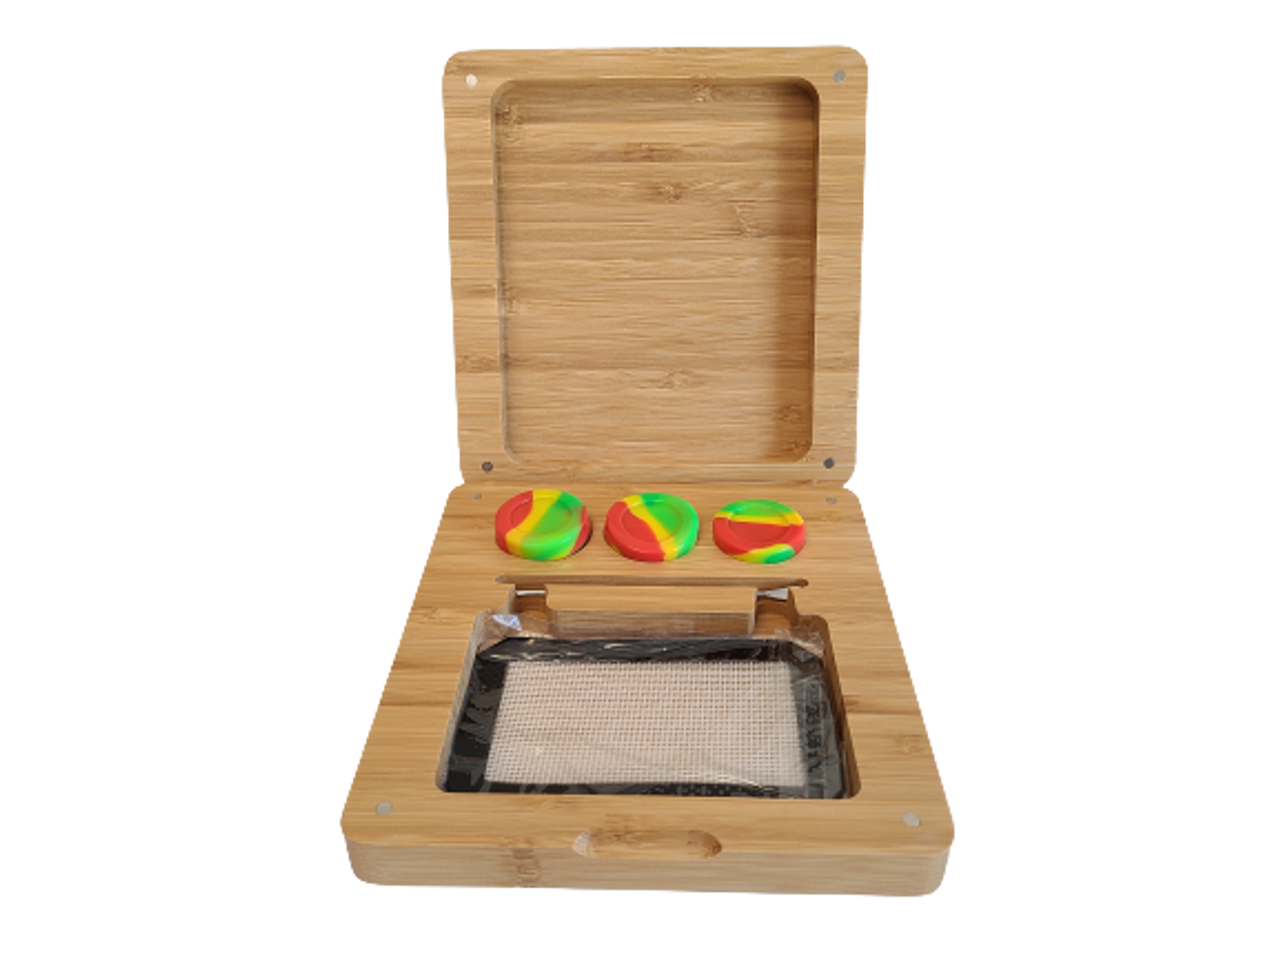 7 inch by 7.5 inch Bamboo Rolling Tray Box Set  with Dab Mat, 3 Wax Containers, Dab Tool and Magnetic Seal